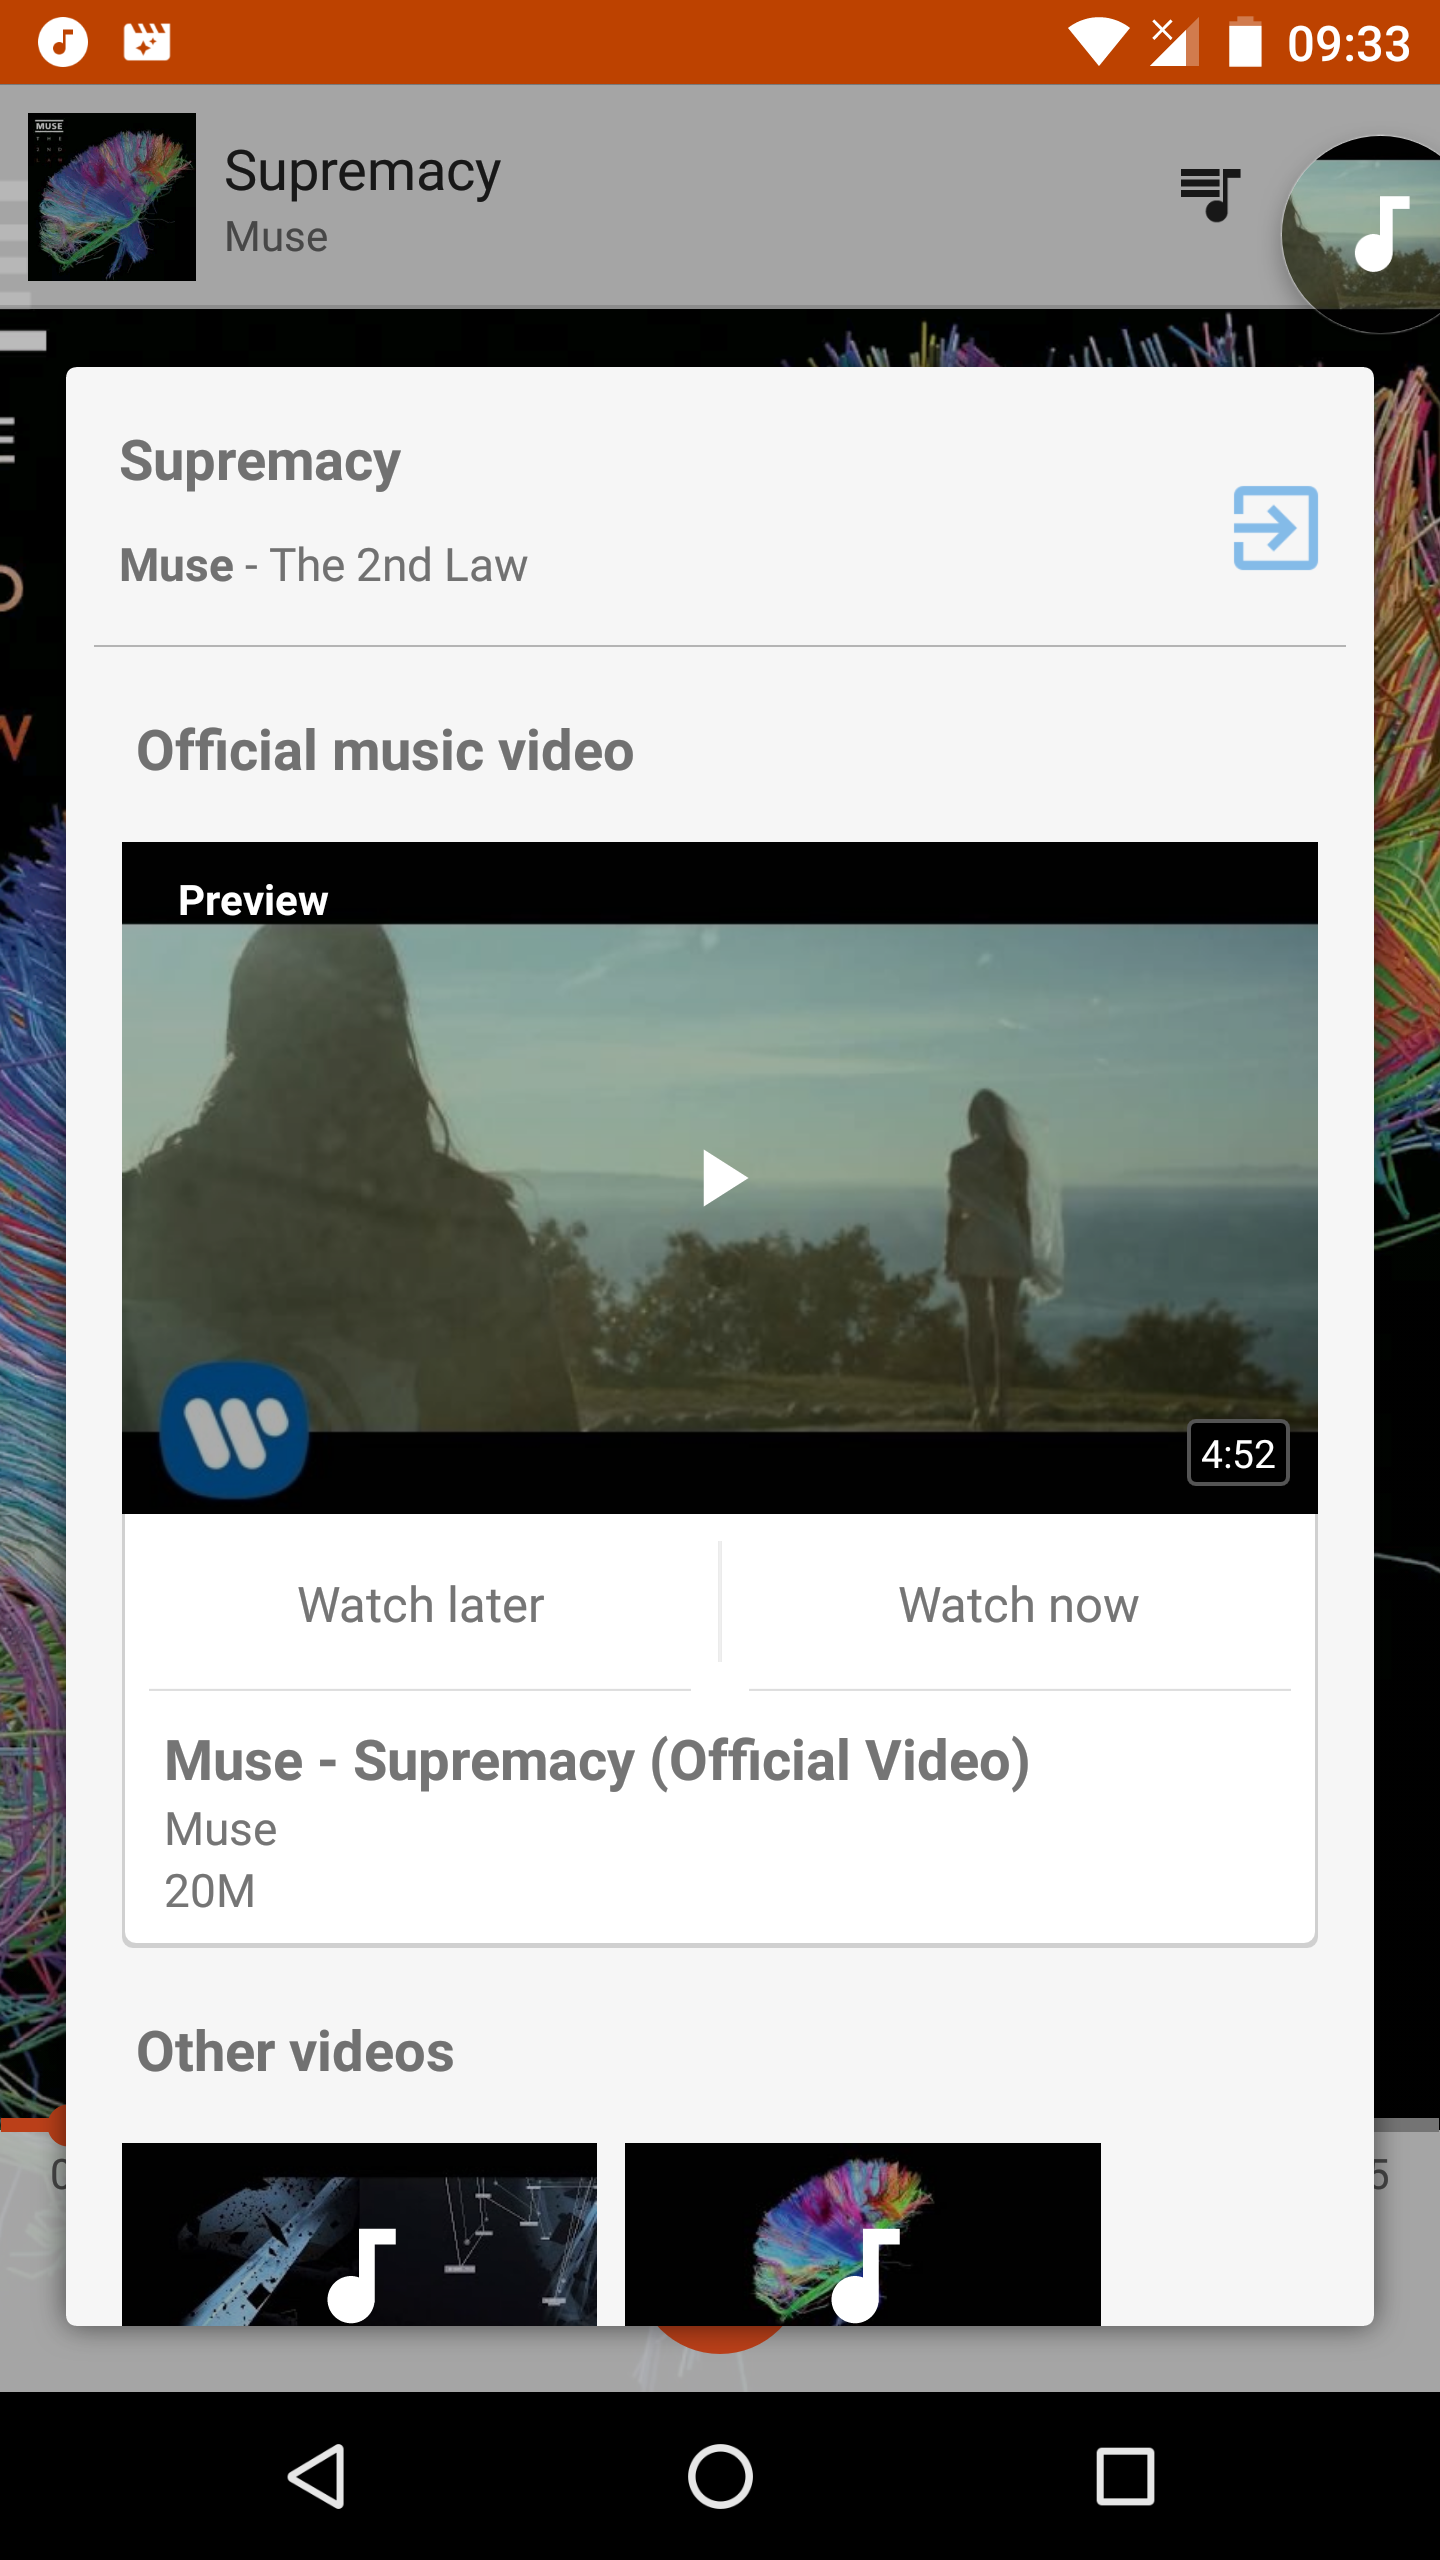 View bigger bruno mars ethnicity for android screenshot - Left A Correctly Identified Video Right An Incorrectly Identified Video